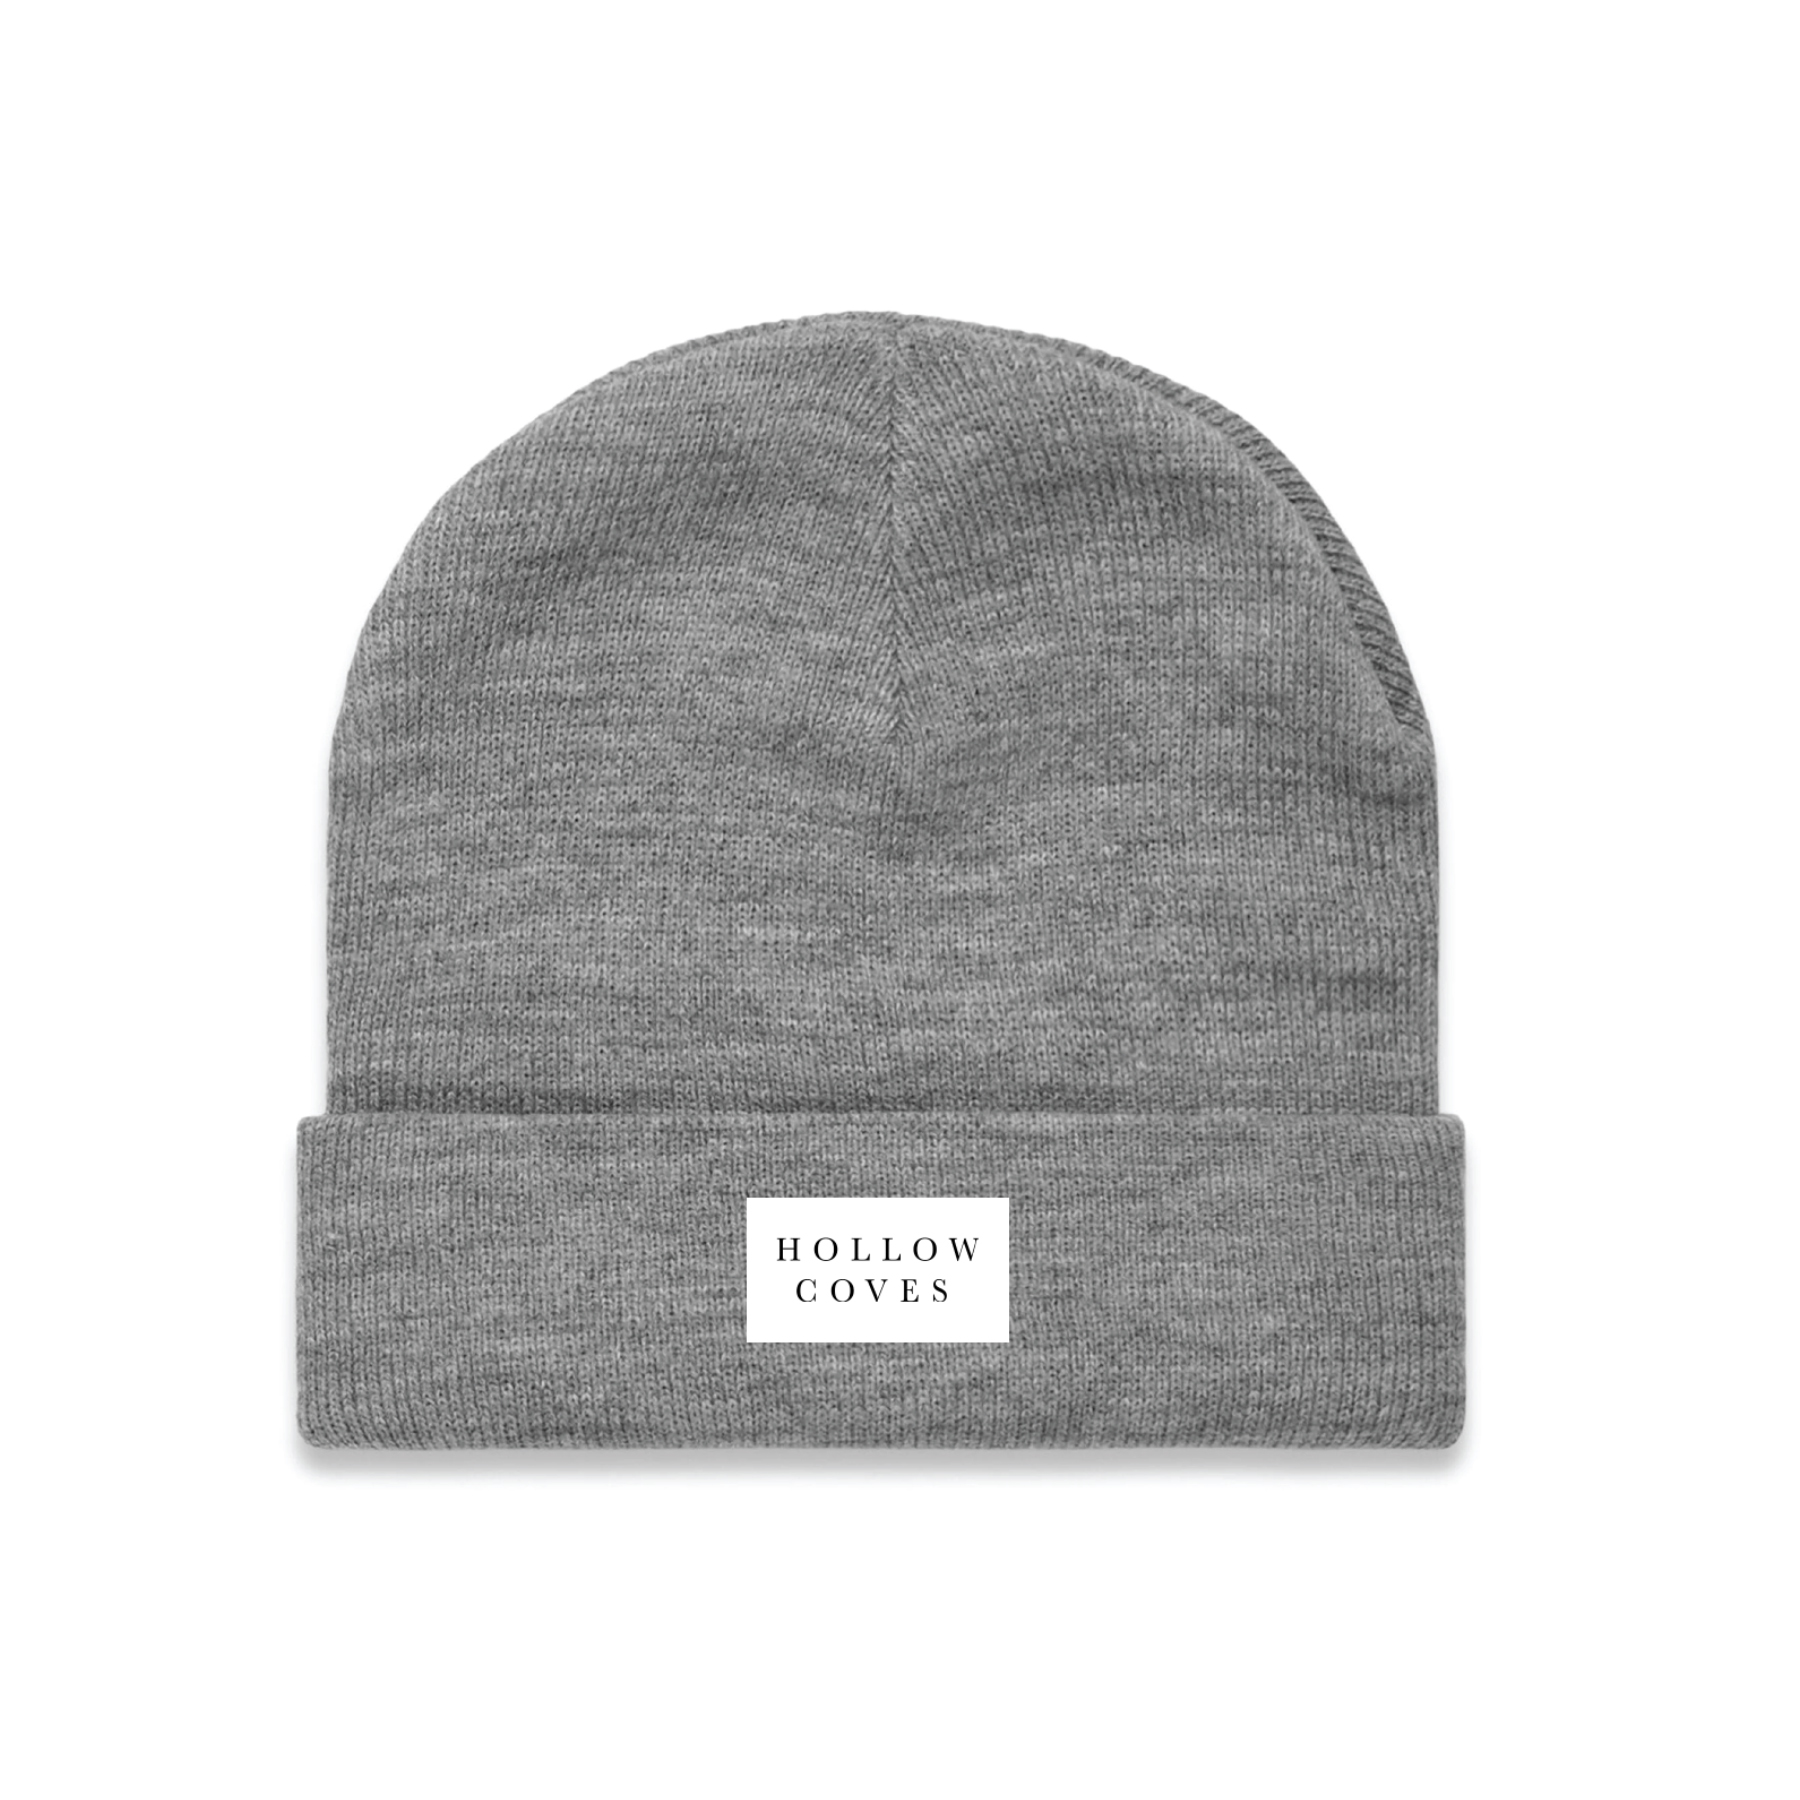 Buy Online Hollow Coves - Grey Beanie